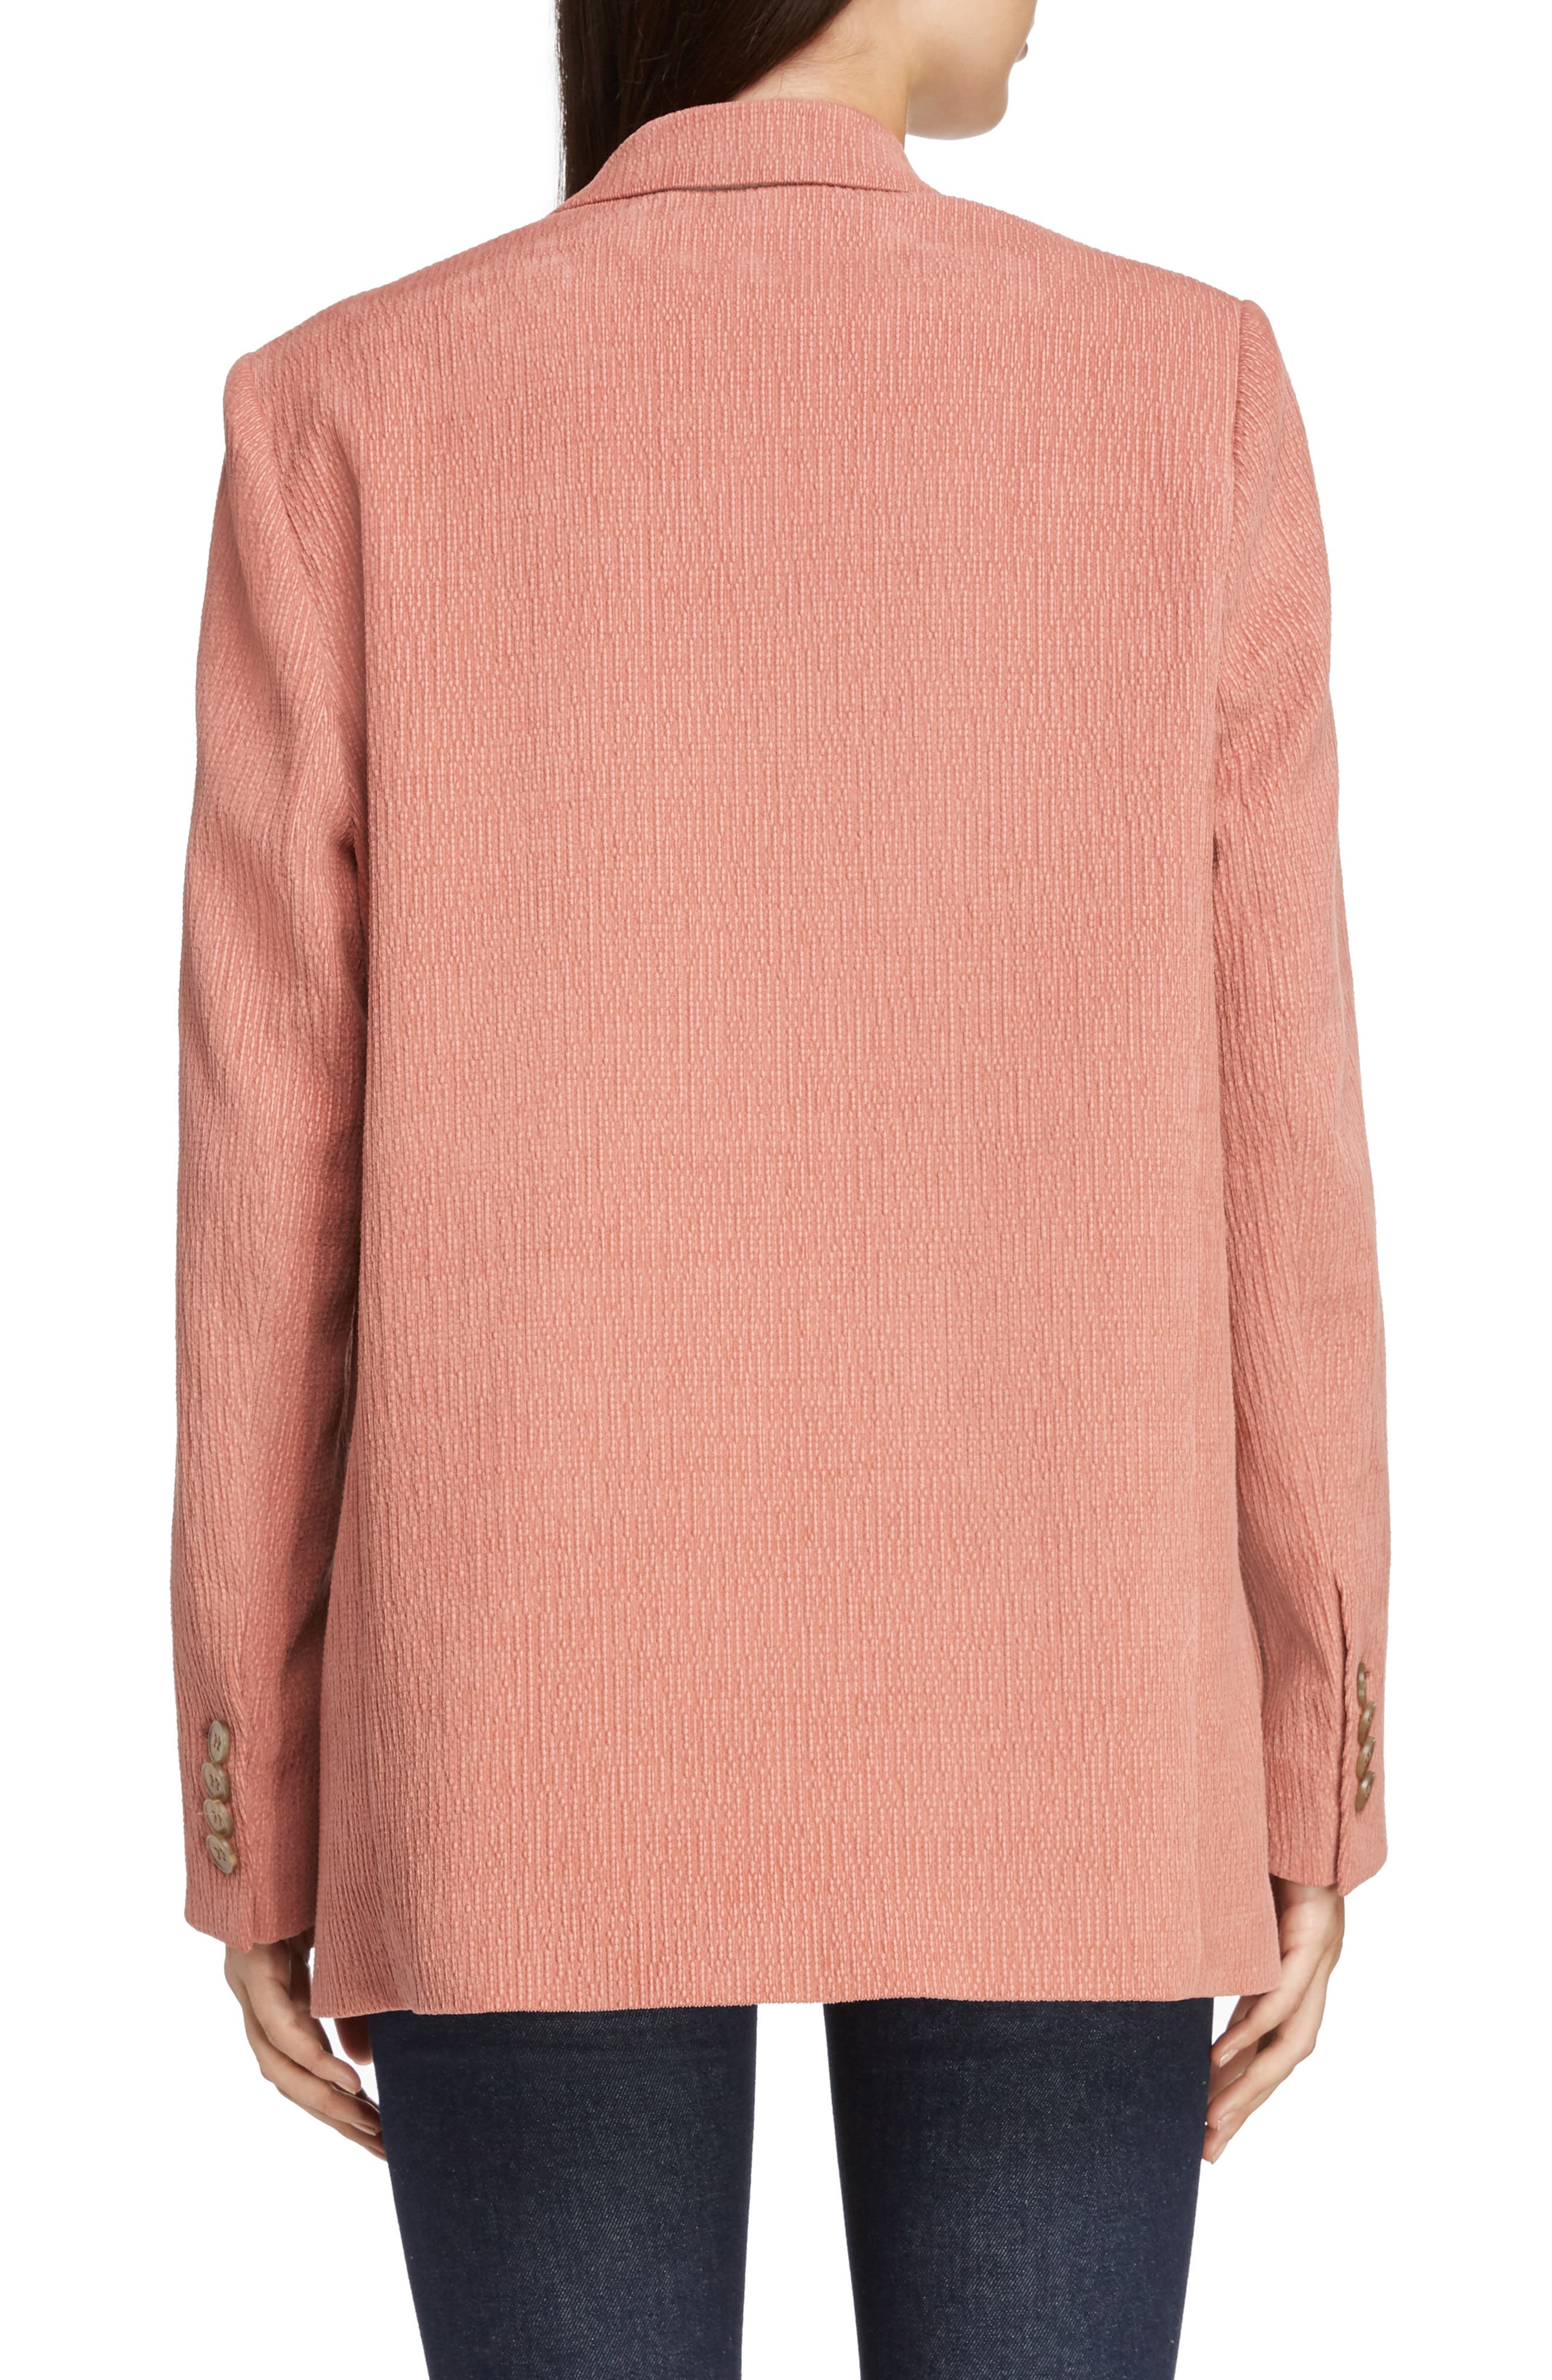 ACNE STUDIOS,                             Corduroy Double Breasted Blazer,                             Alternate thumbnail 2, color,                             OLD PINK